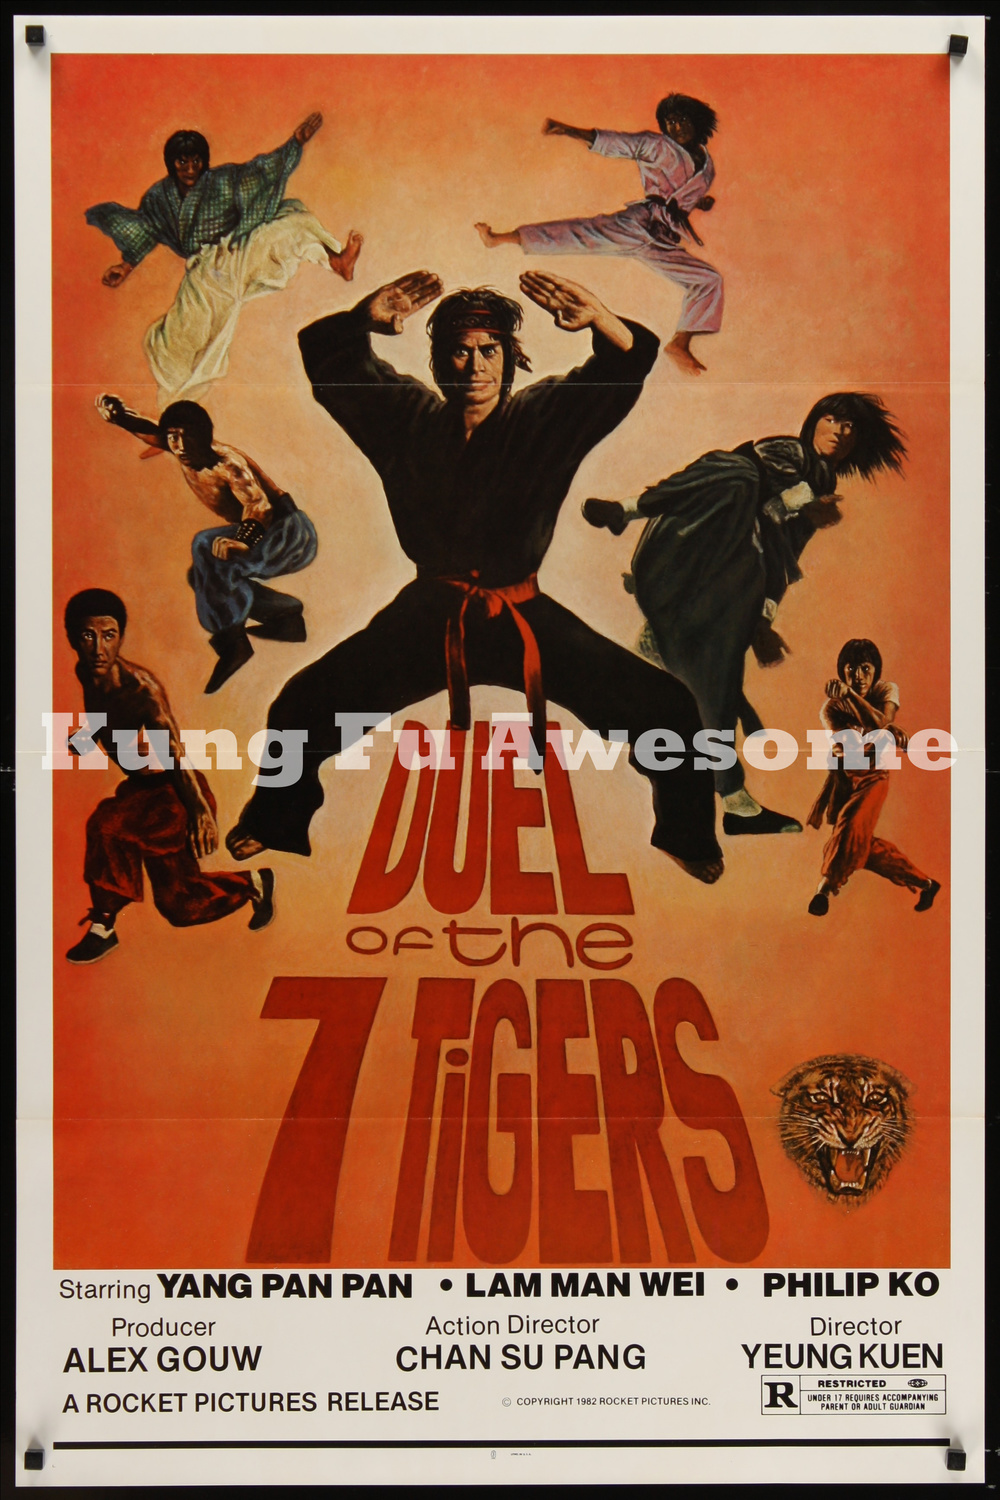 duel_of_the_7_tigers_NZ03773_L.jpg